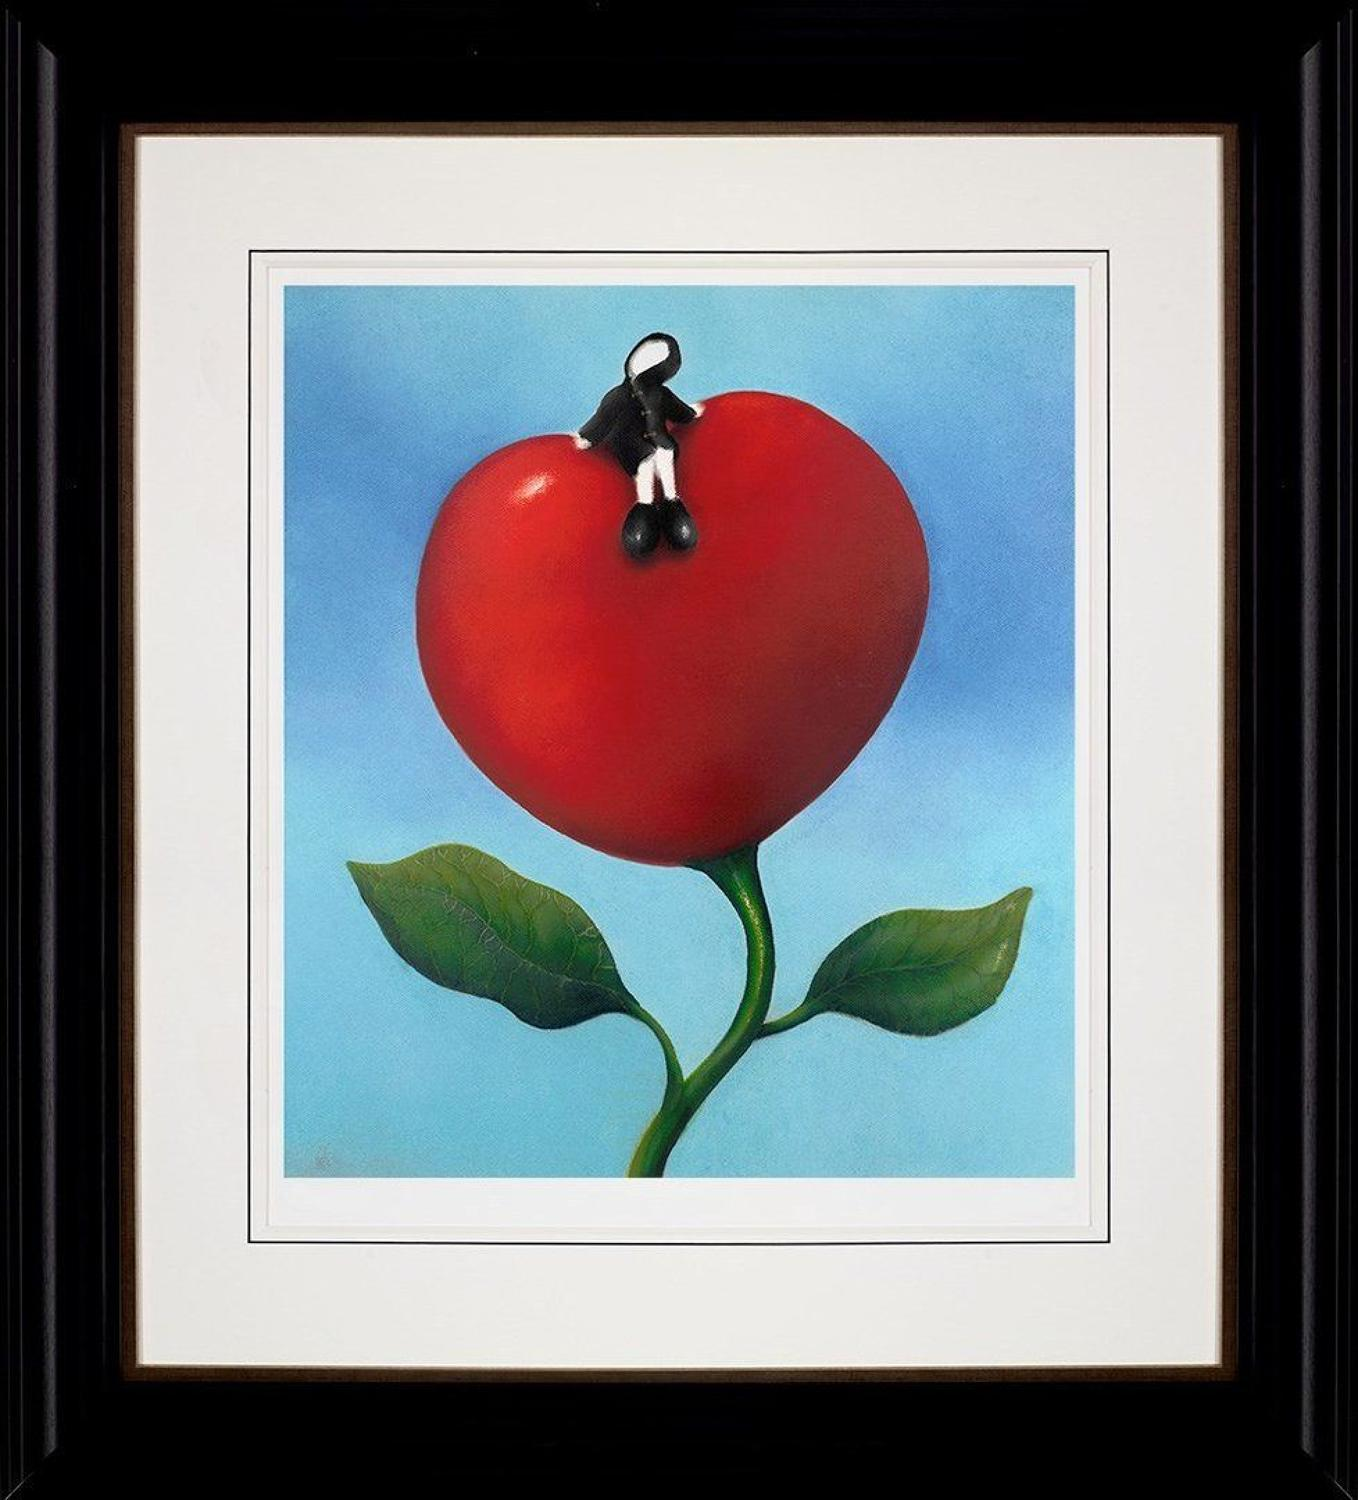 Love and Life by Mackenzie Thorpe Framed Art Print.